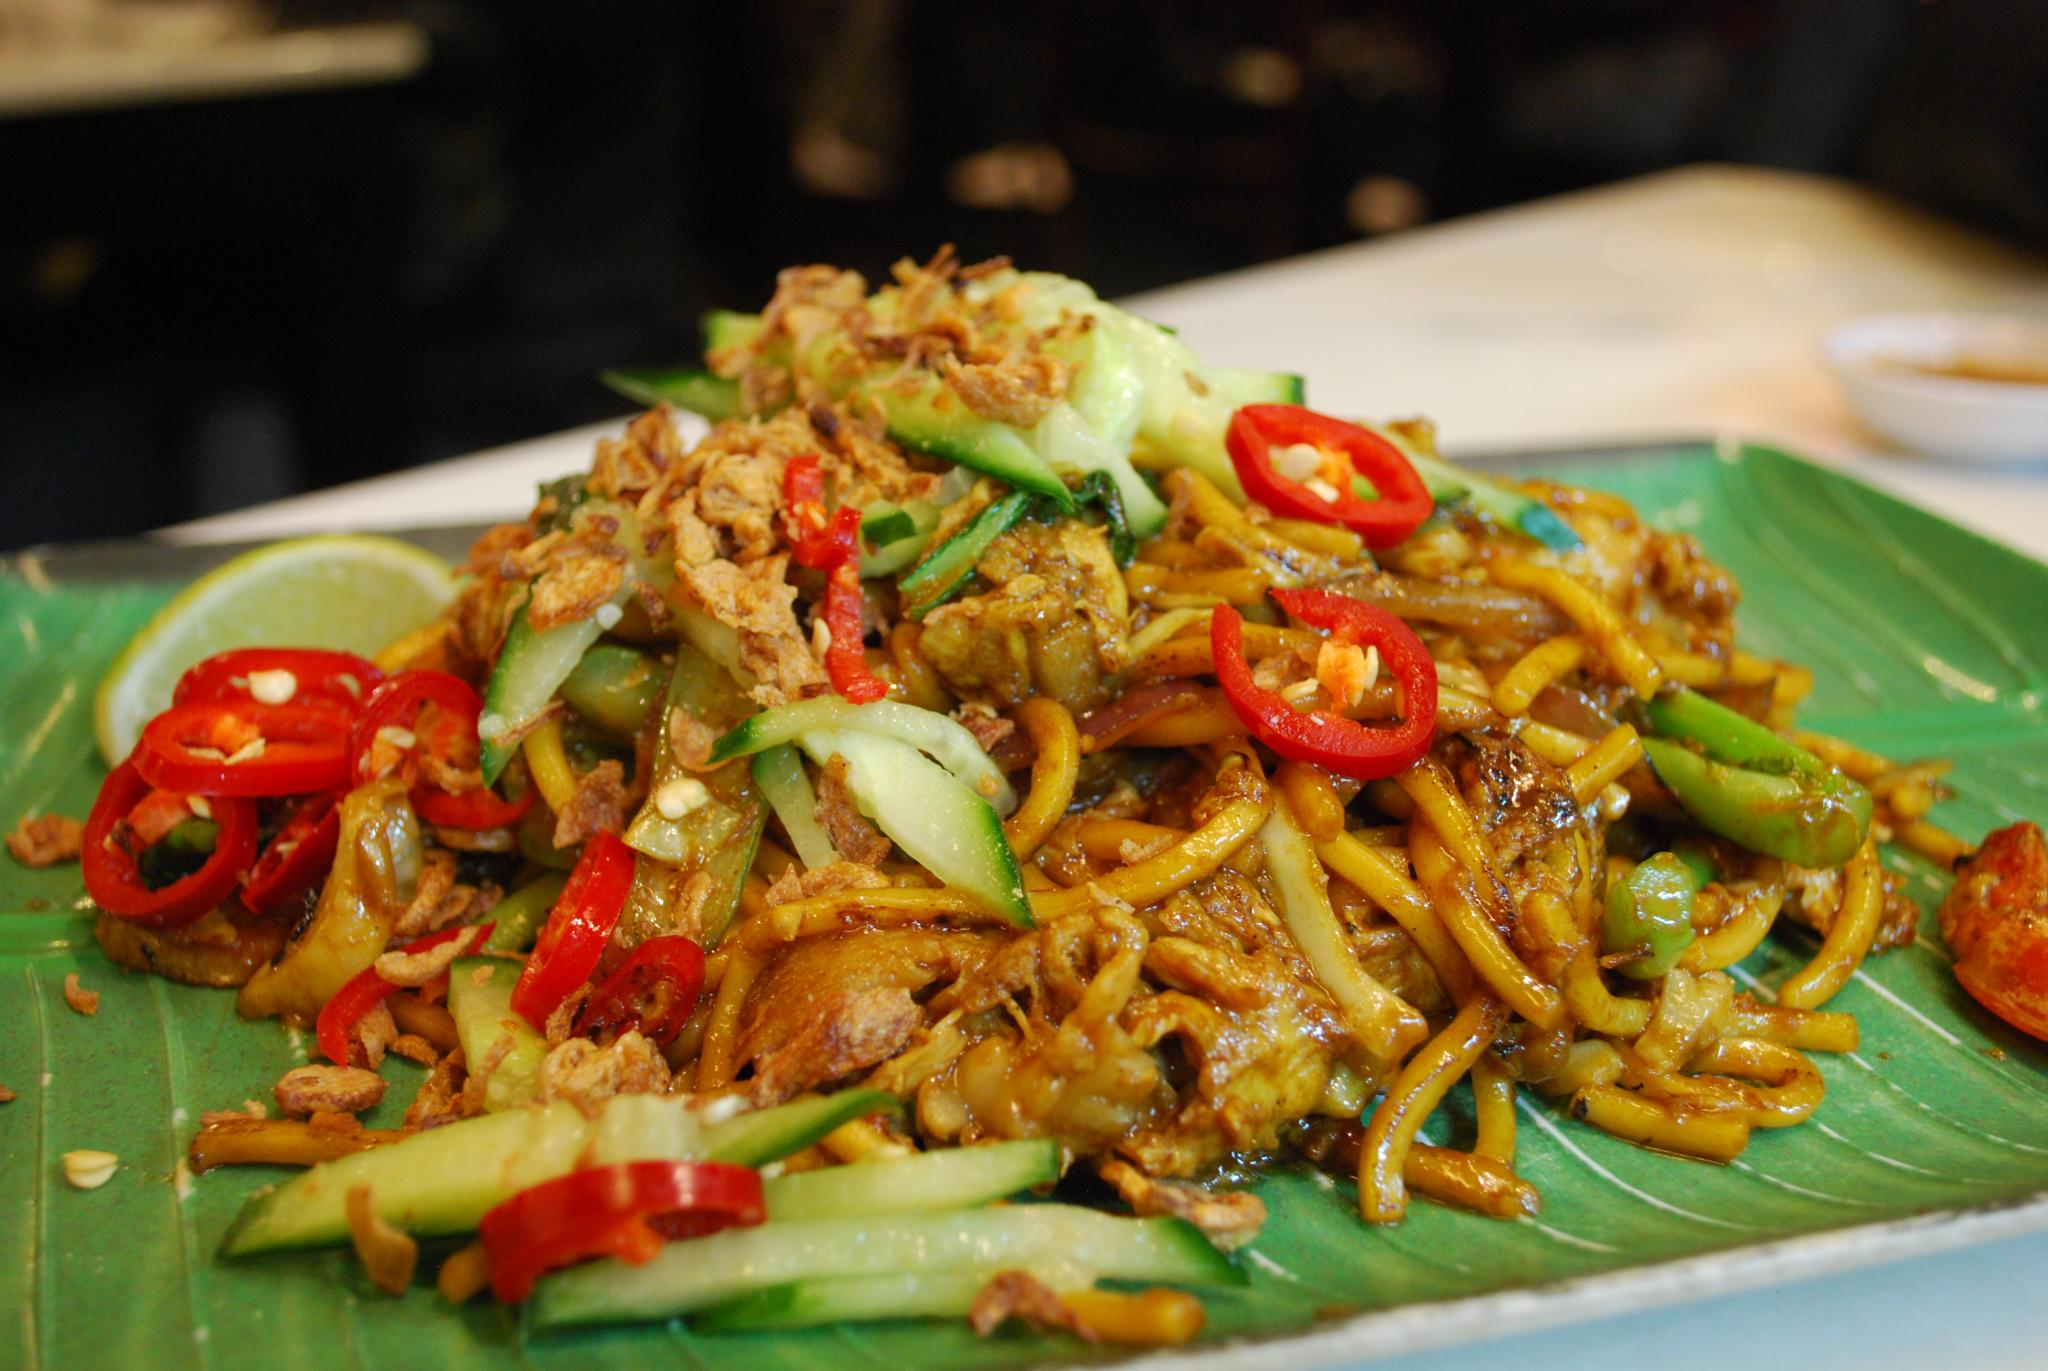 brown mee goreng fried noodles chili cucumber singapore malaysia indonesia traditional street hawker food